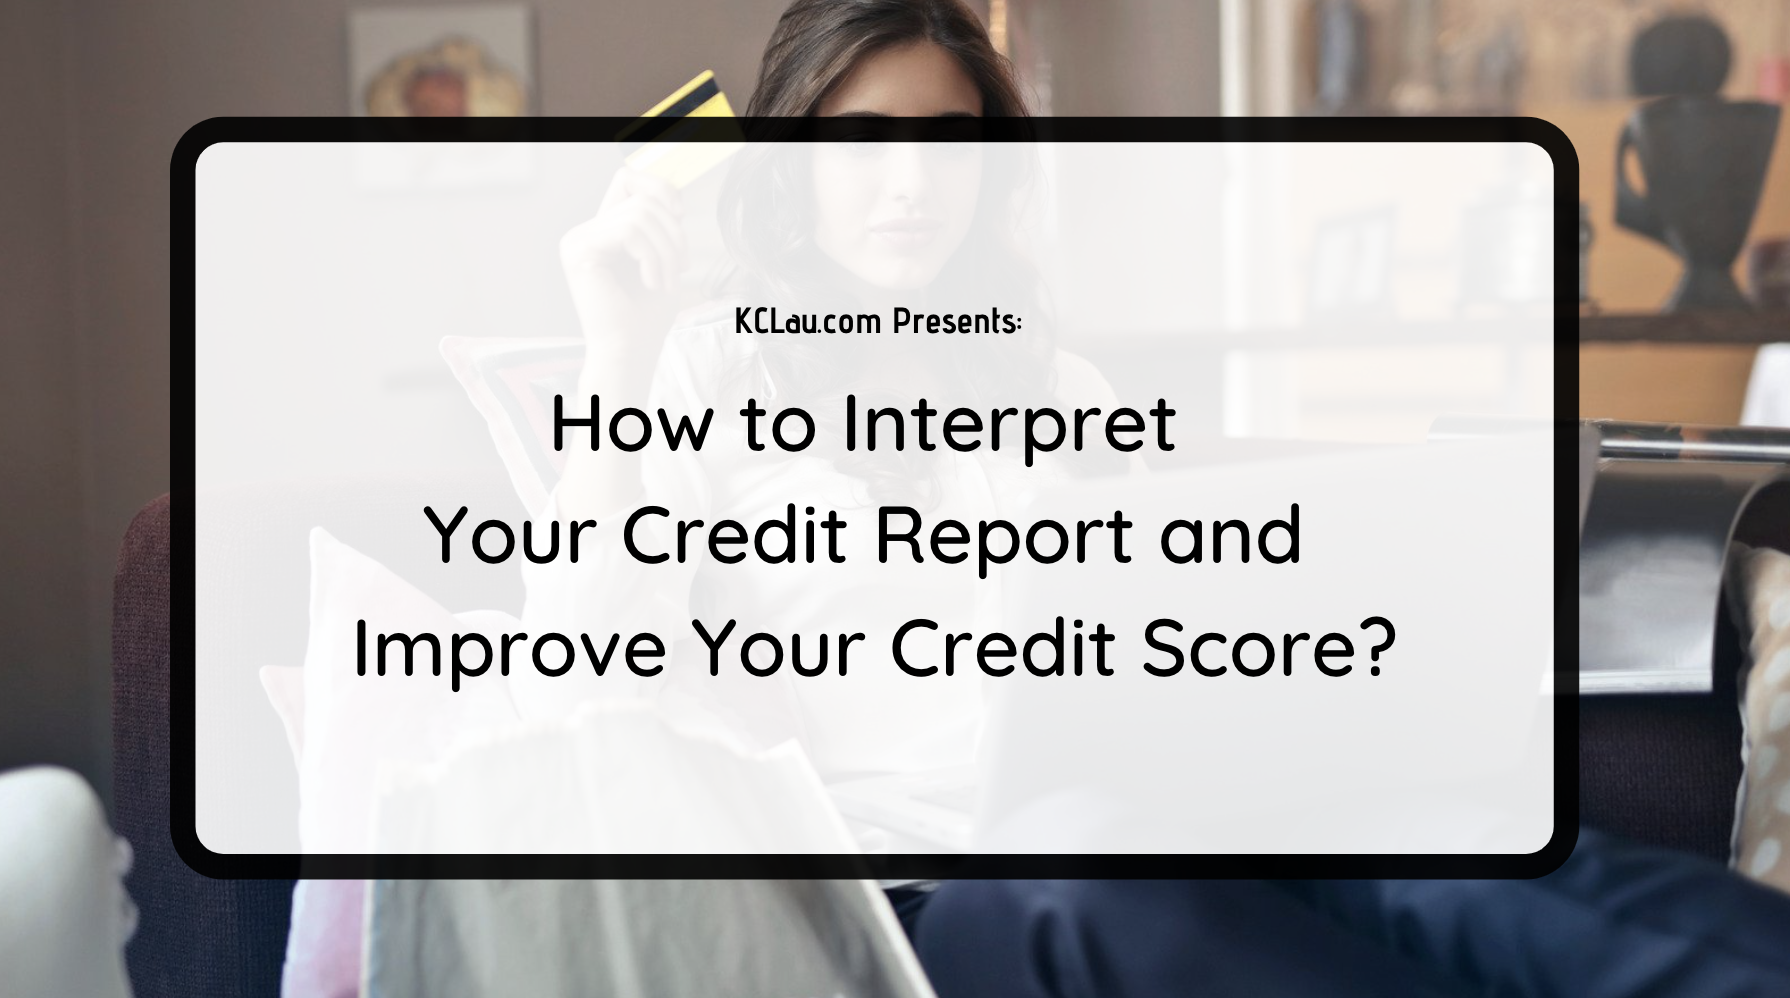 How to Interpret Your Credit Report and Improve Your Credit Score?